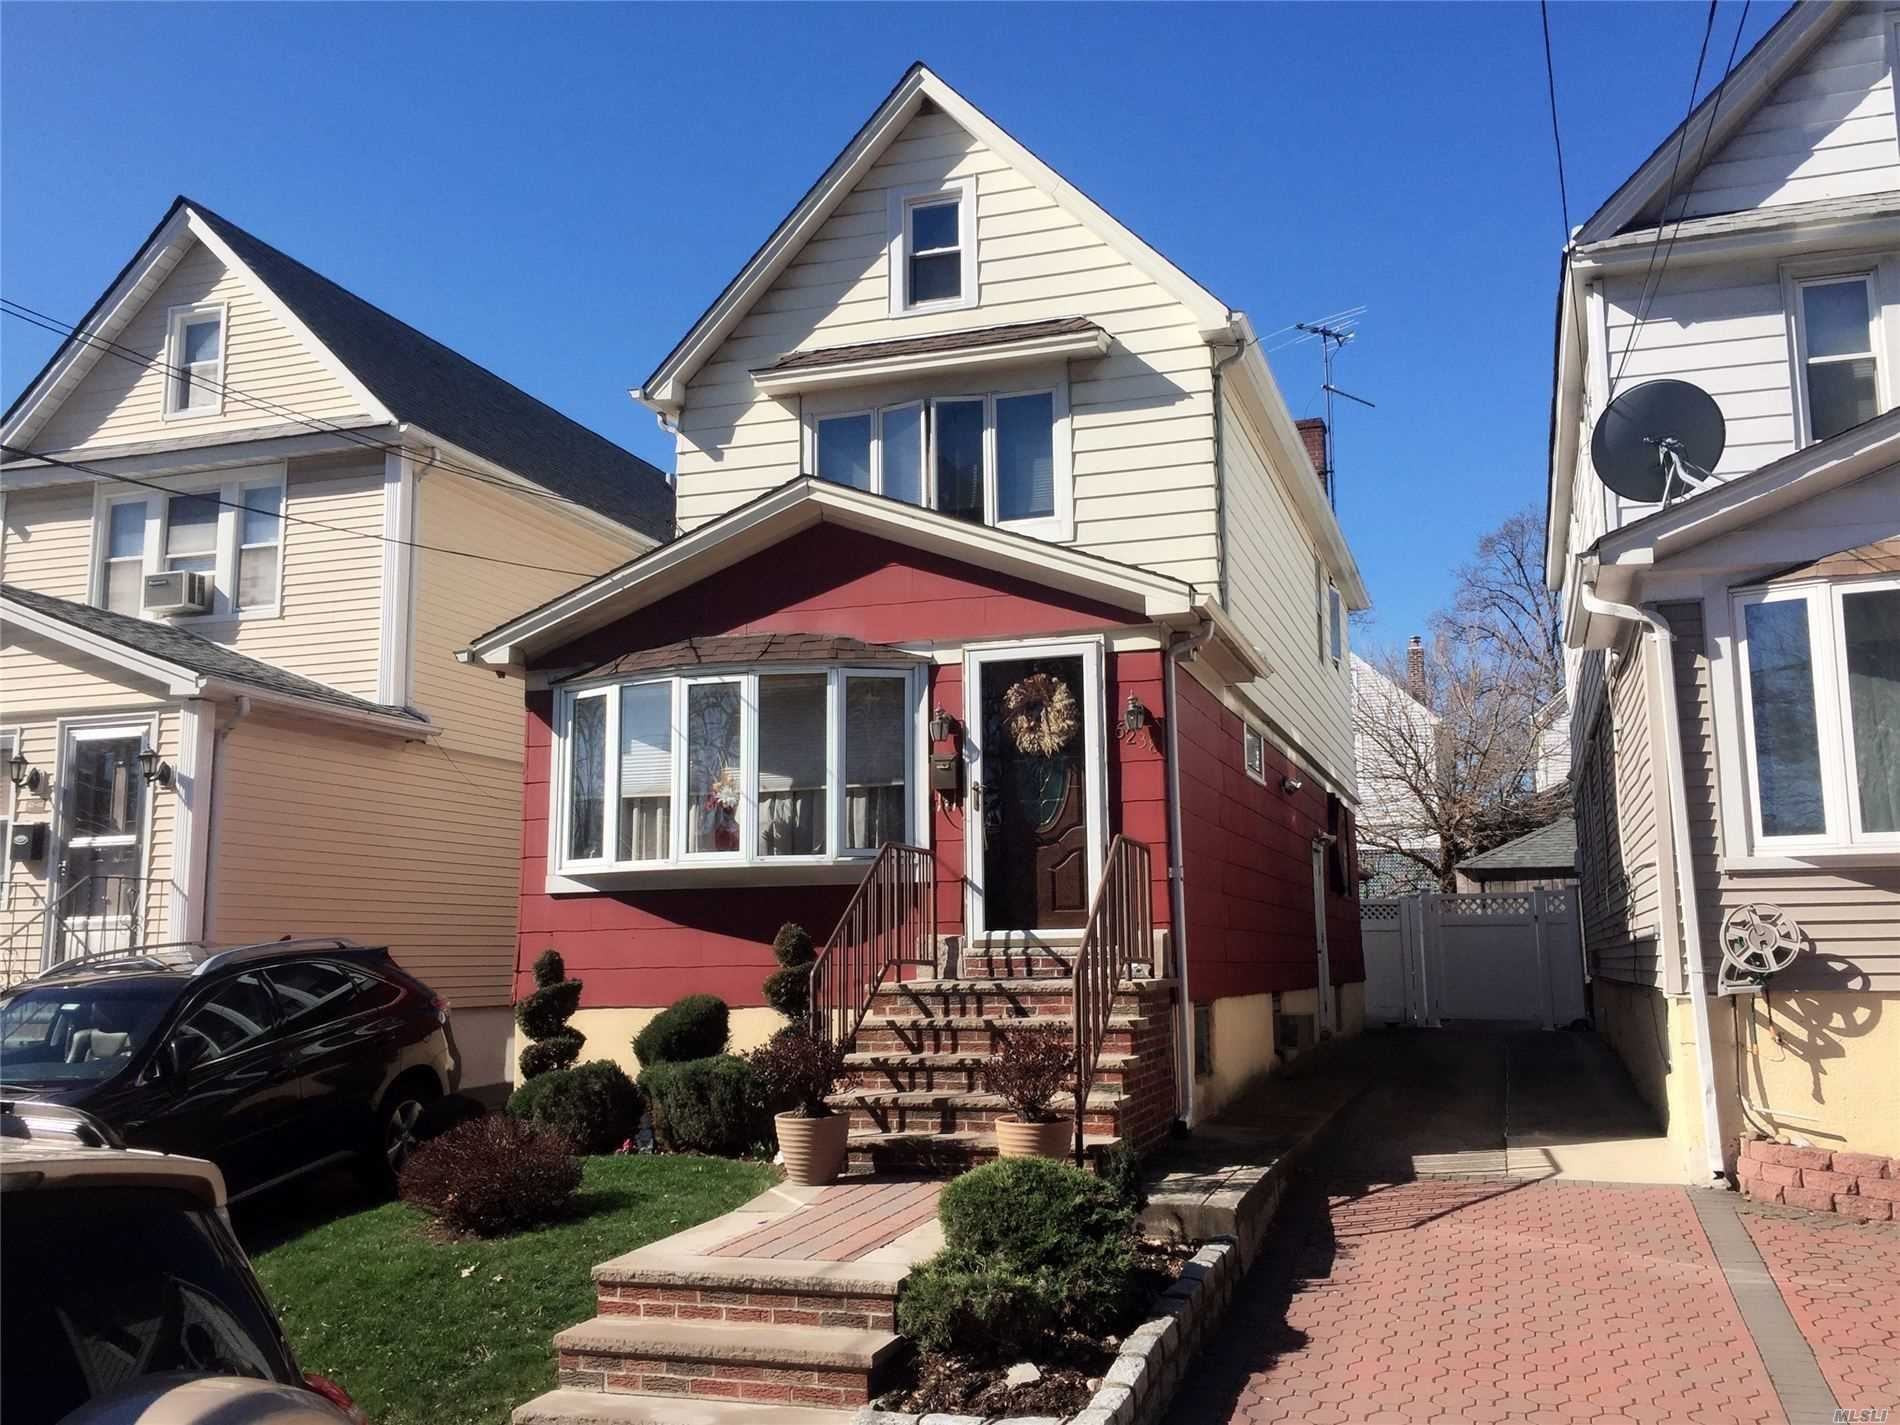 62-38 84 Street, Middle Village, NY 11379 - MLS#: 3247341